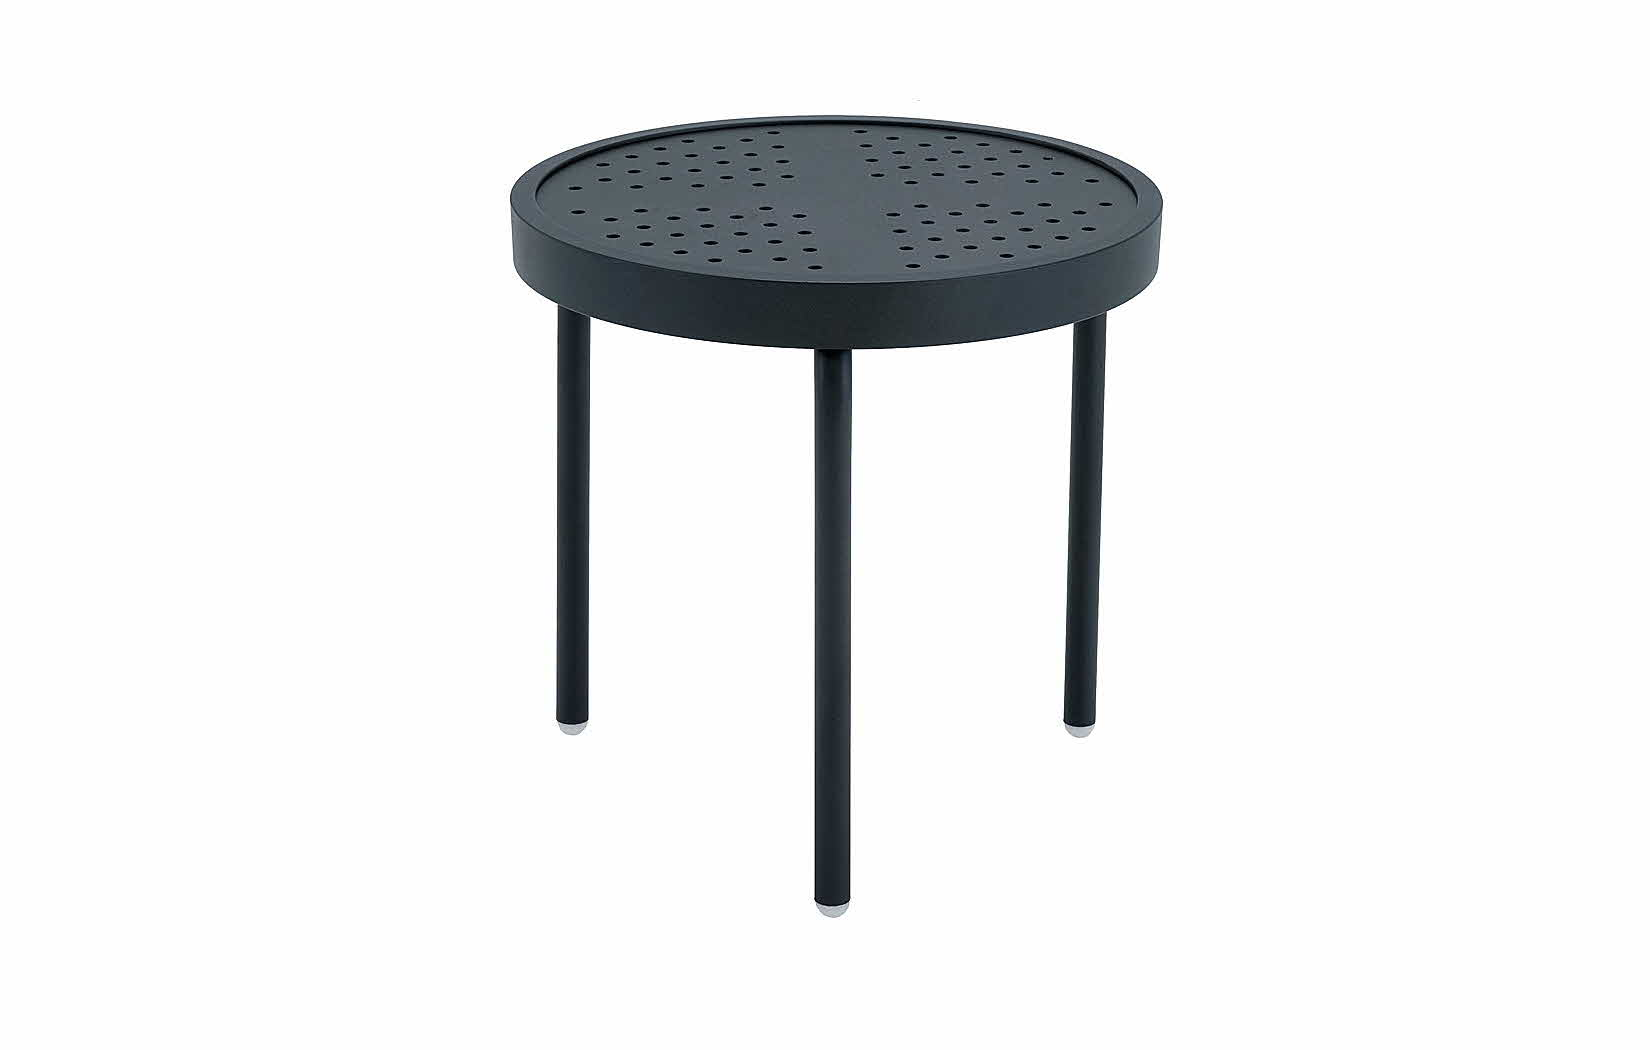 outdoor side tables commercial furniture texacraft main wood accent table round stamp top extrusion legs half target metal patio tiffany style lighting address plaques oak console